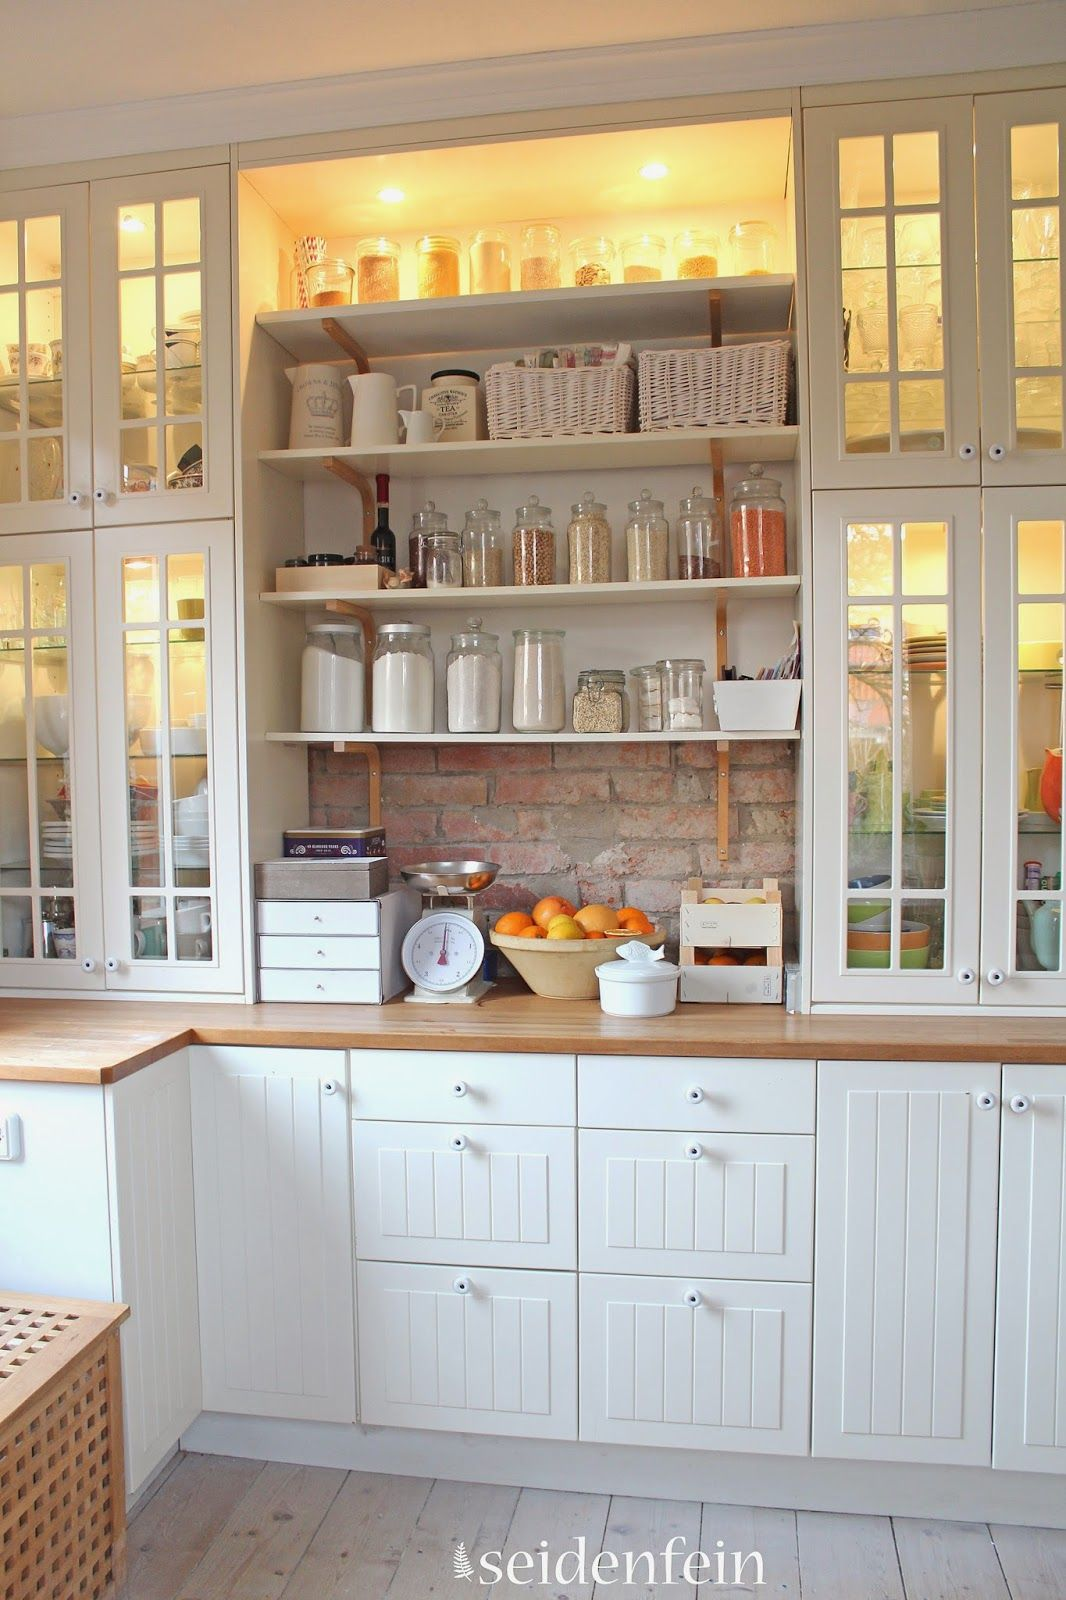 Country Küche Ikea Such A Charming Kitchen Seidenfeins Dekoblog Küchen